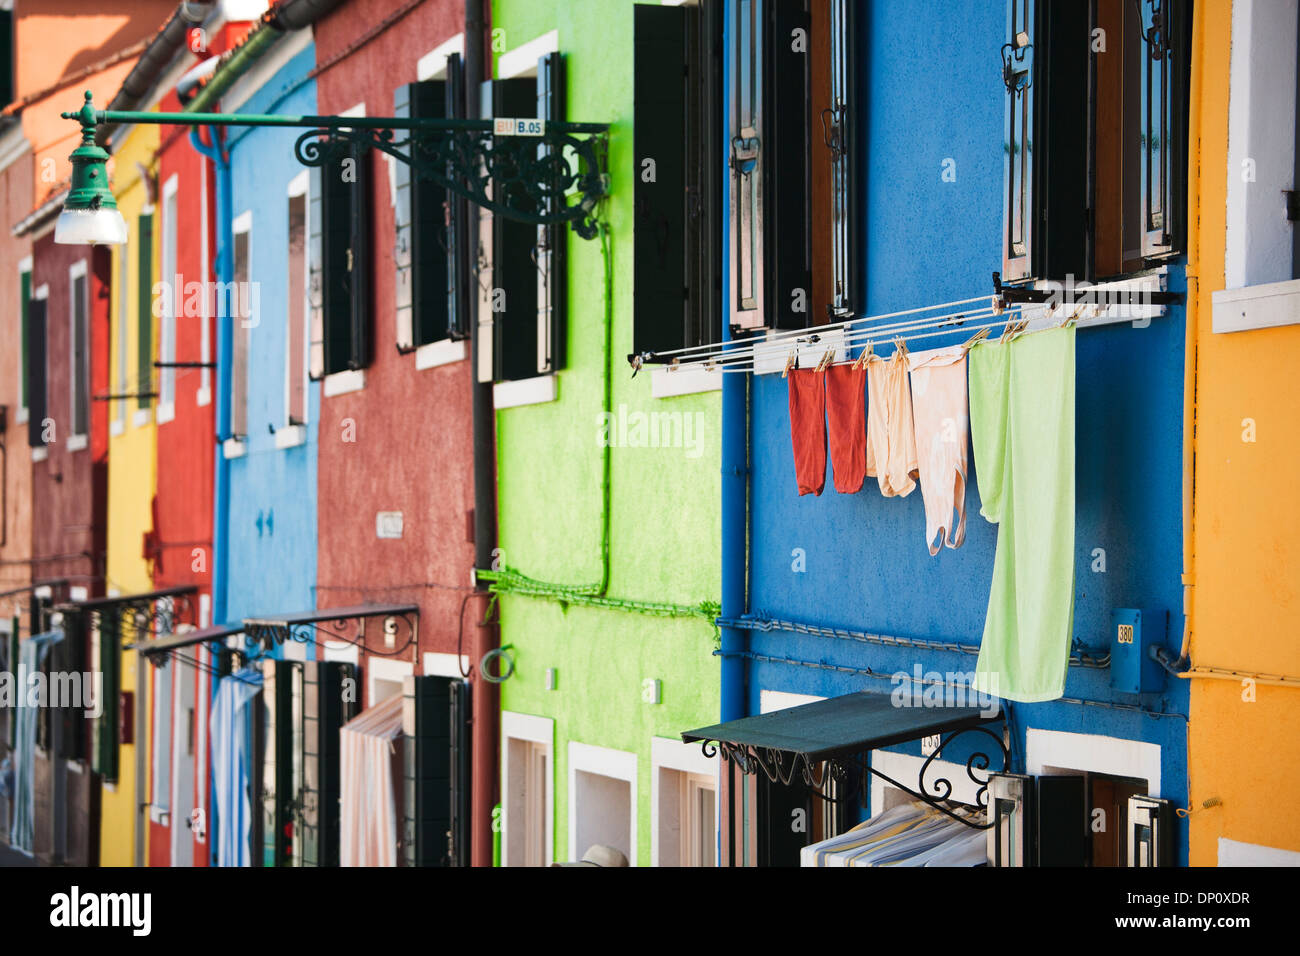 Burano, Venice - Italy; drying towels at the facade of multicolored houses - Stock Image